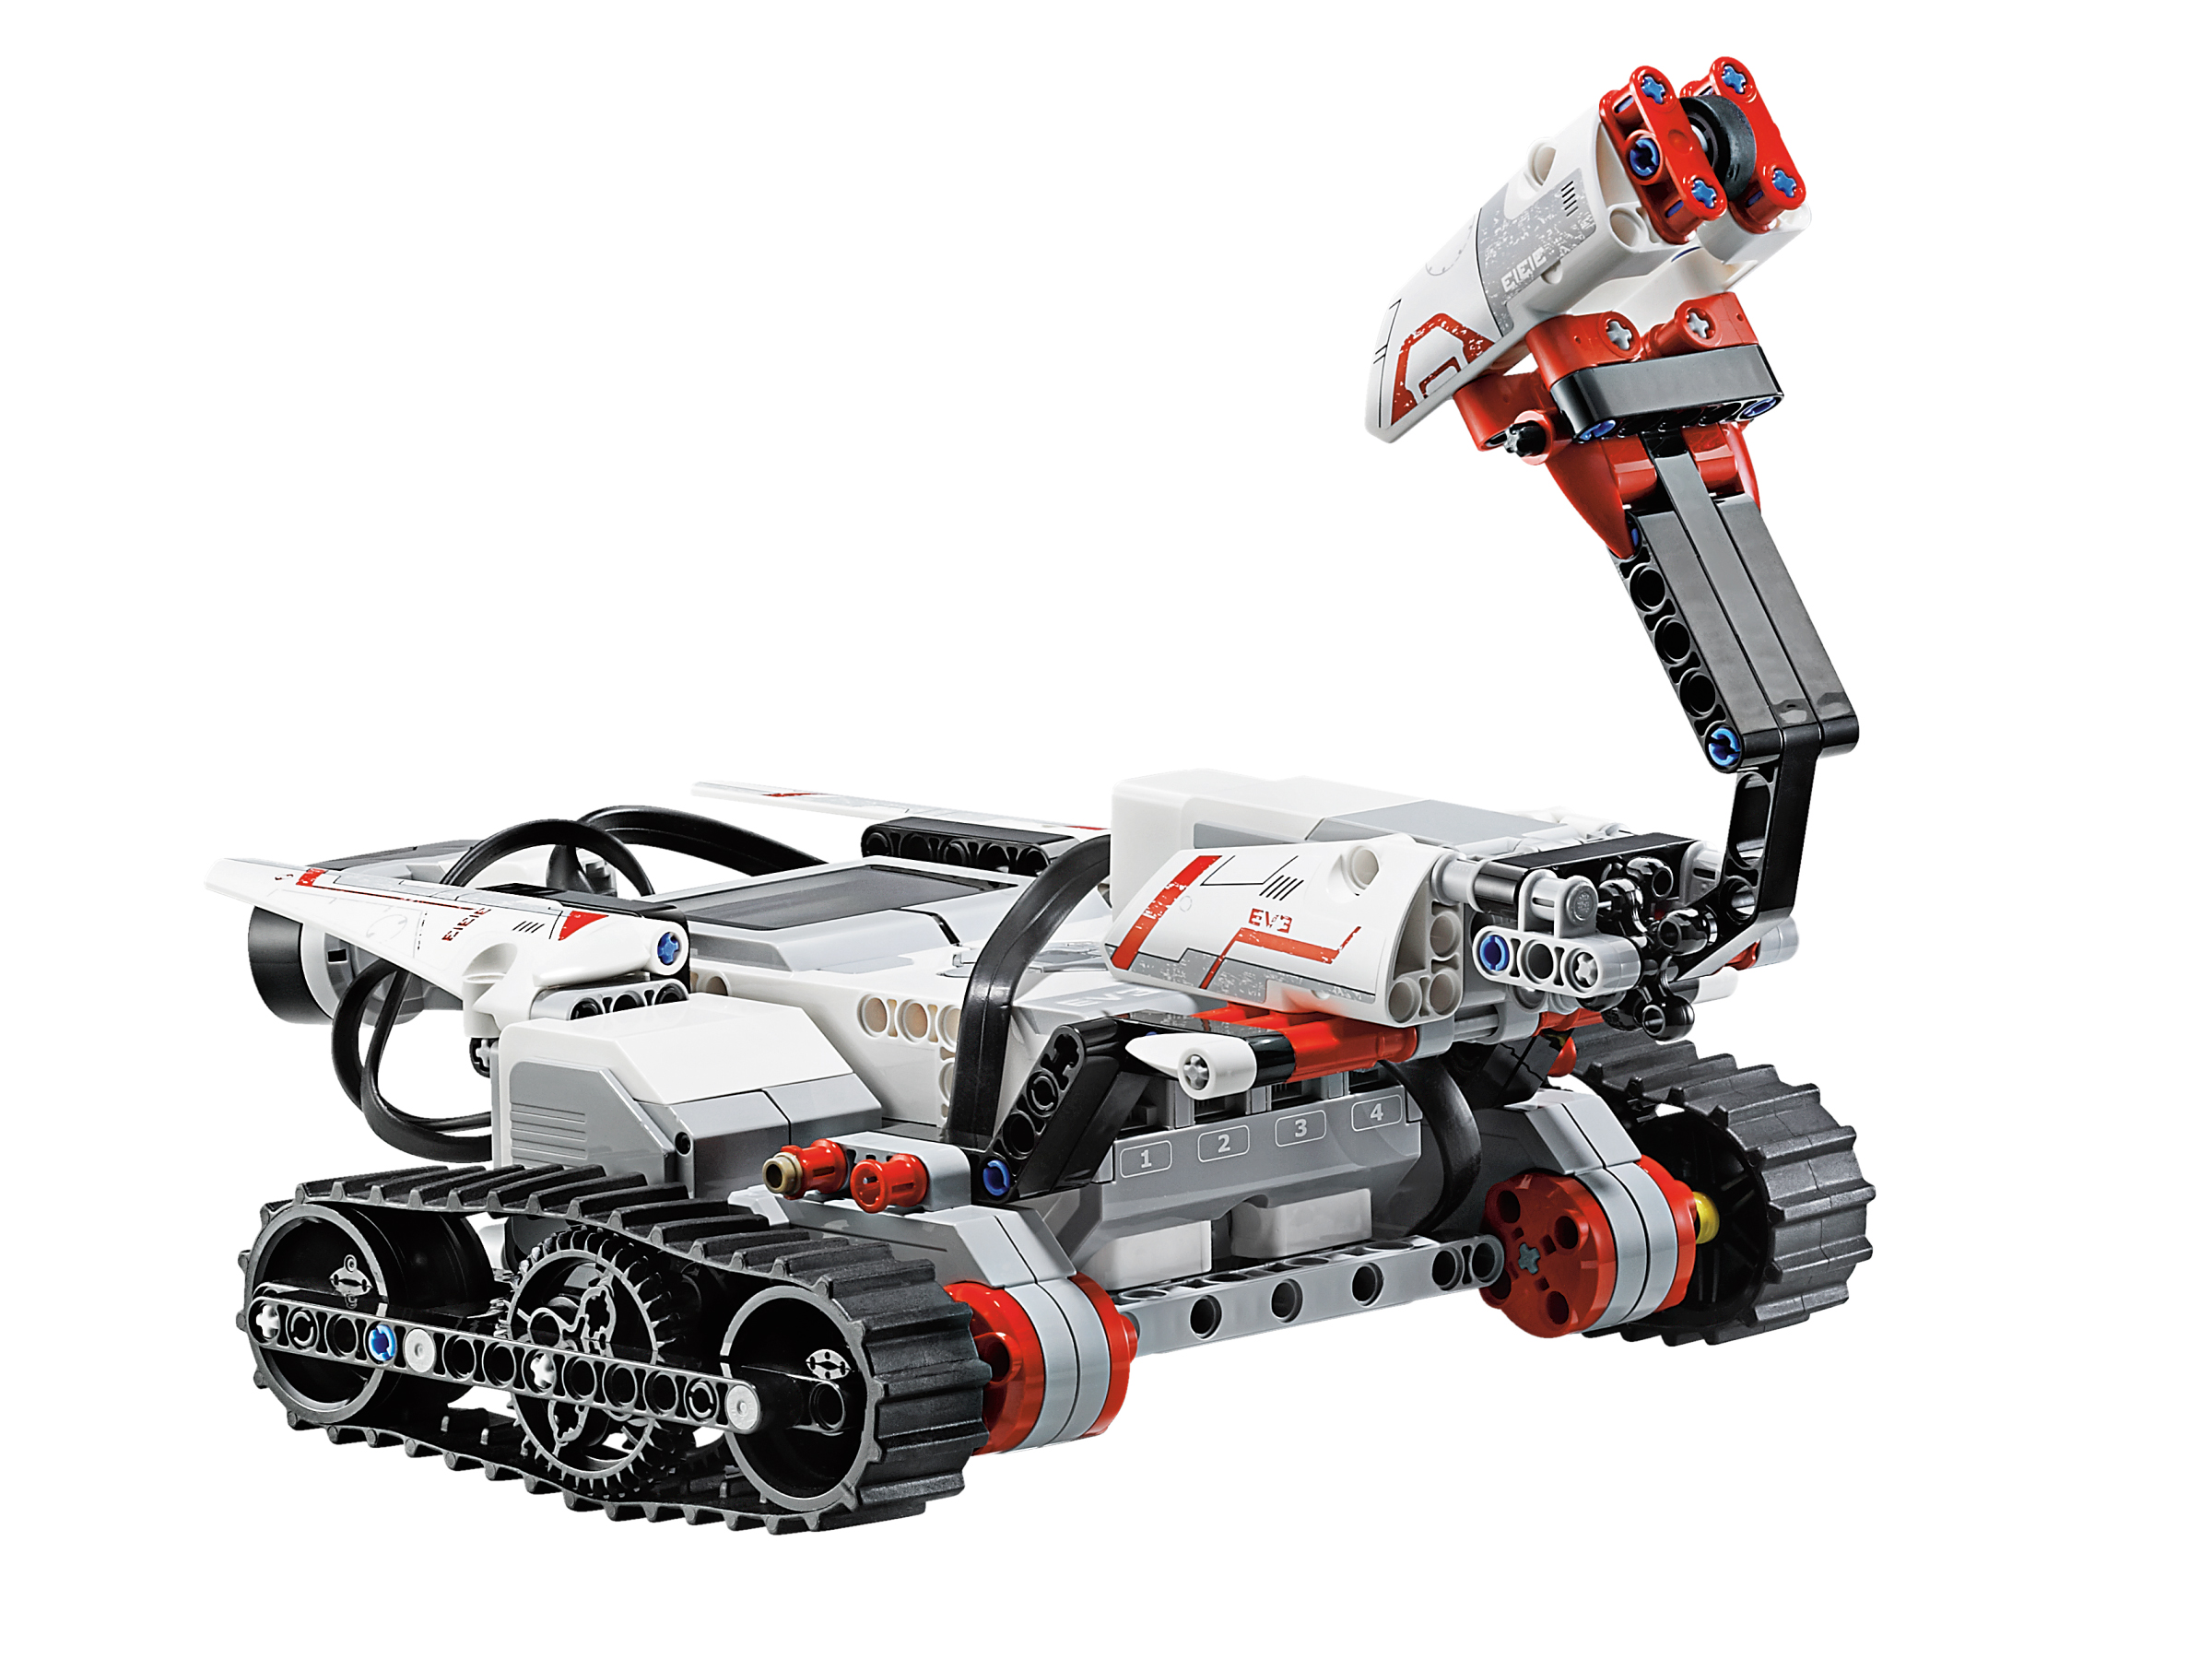 LEGO MINDSTORMS EV3 31313 Building Set (601 Pieces)